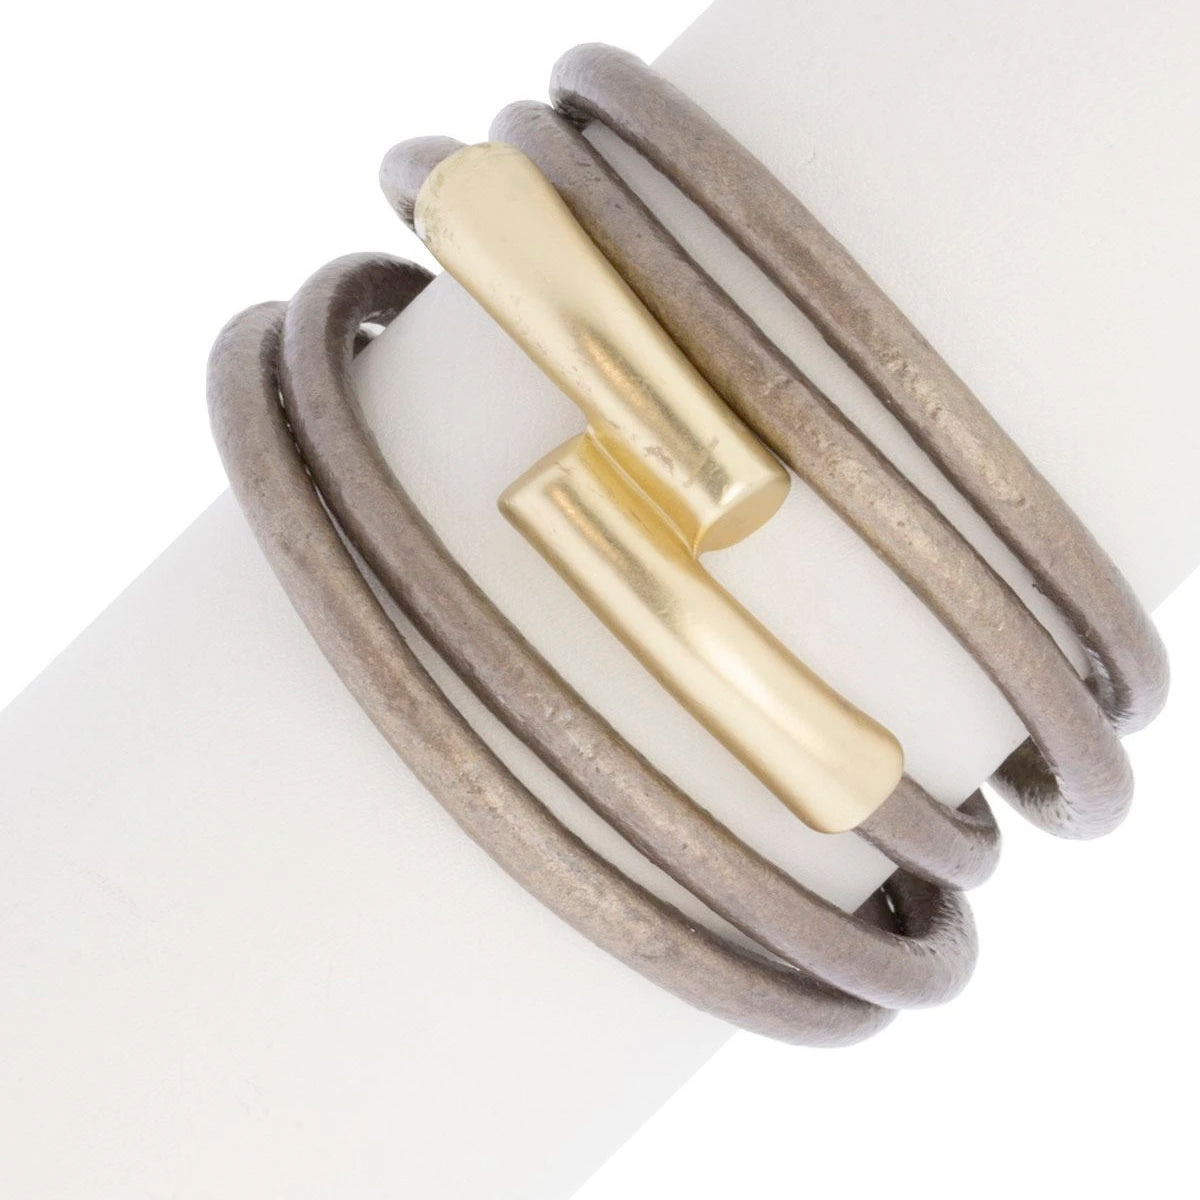 BRONZE LEATHER TUBE BRACELET - Bronze